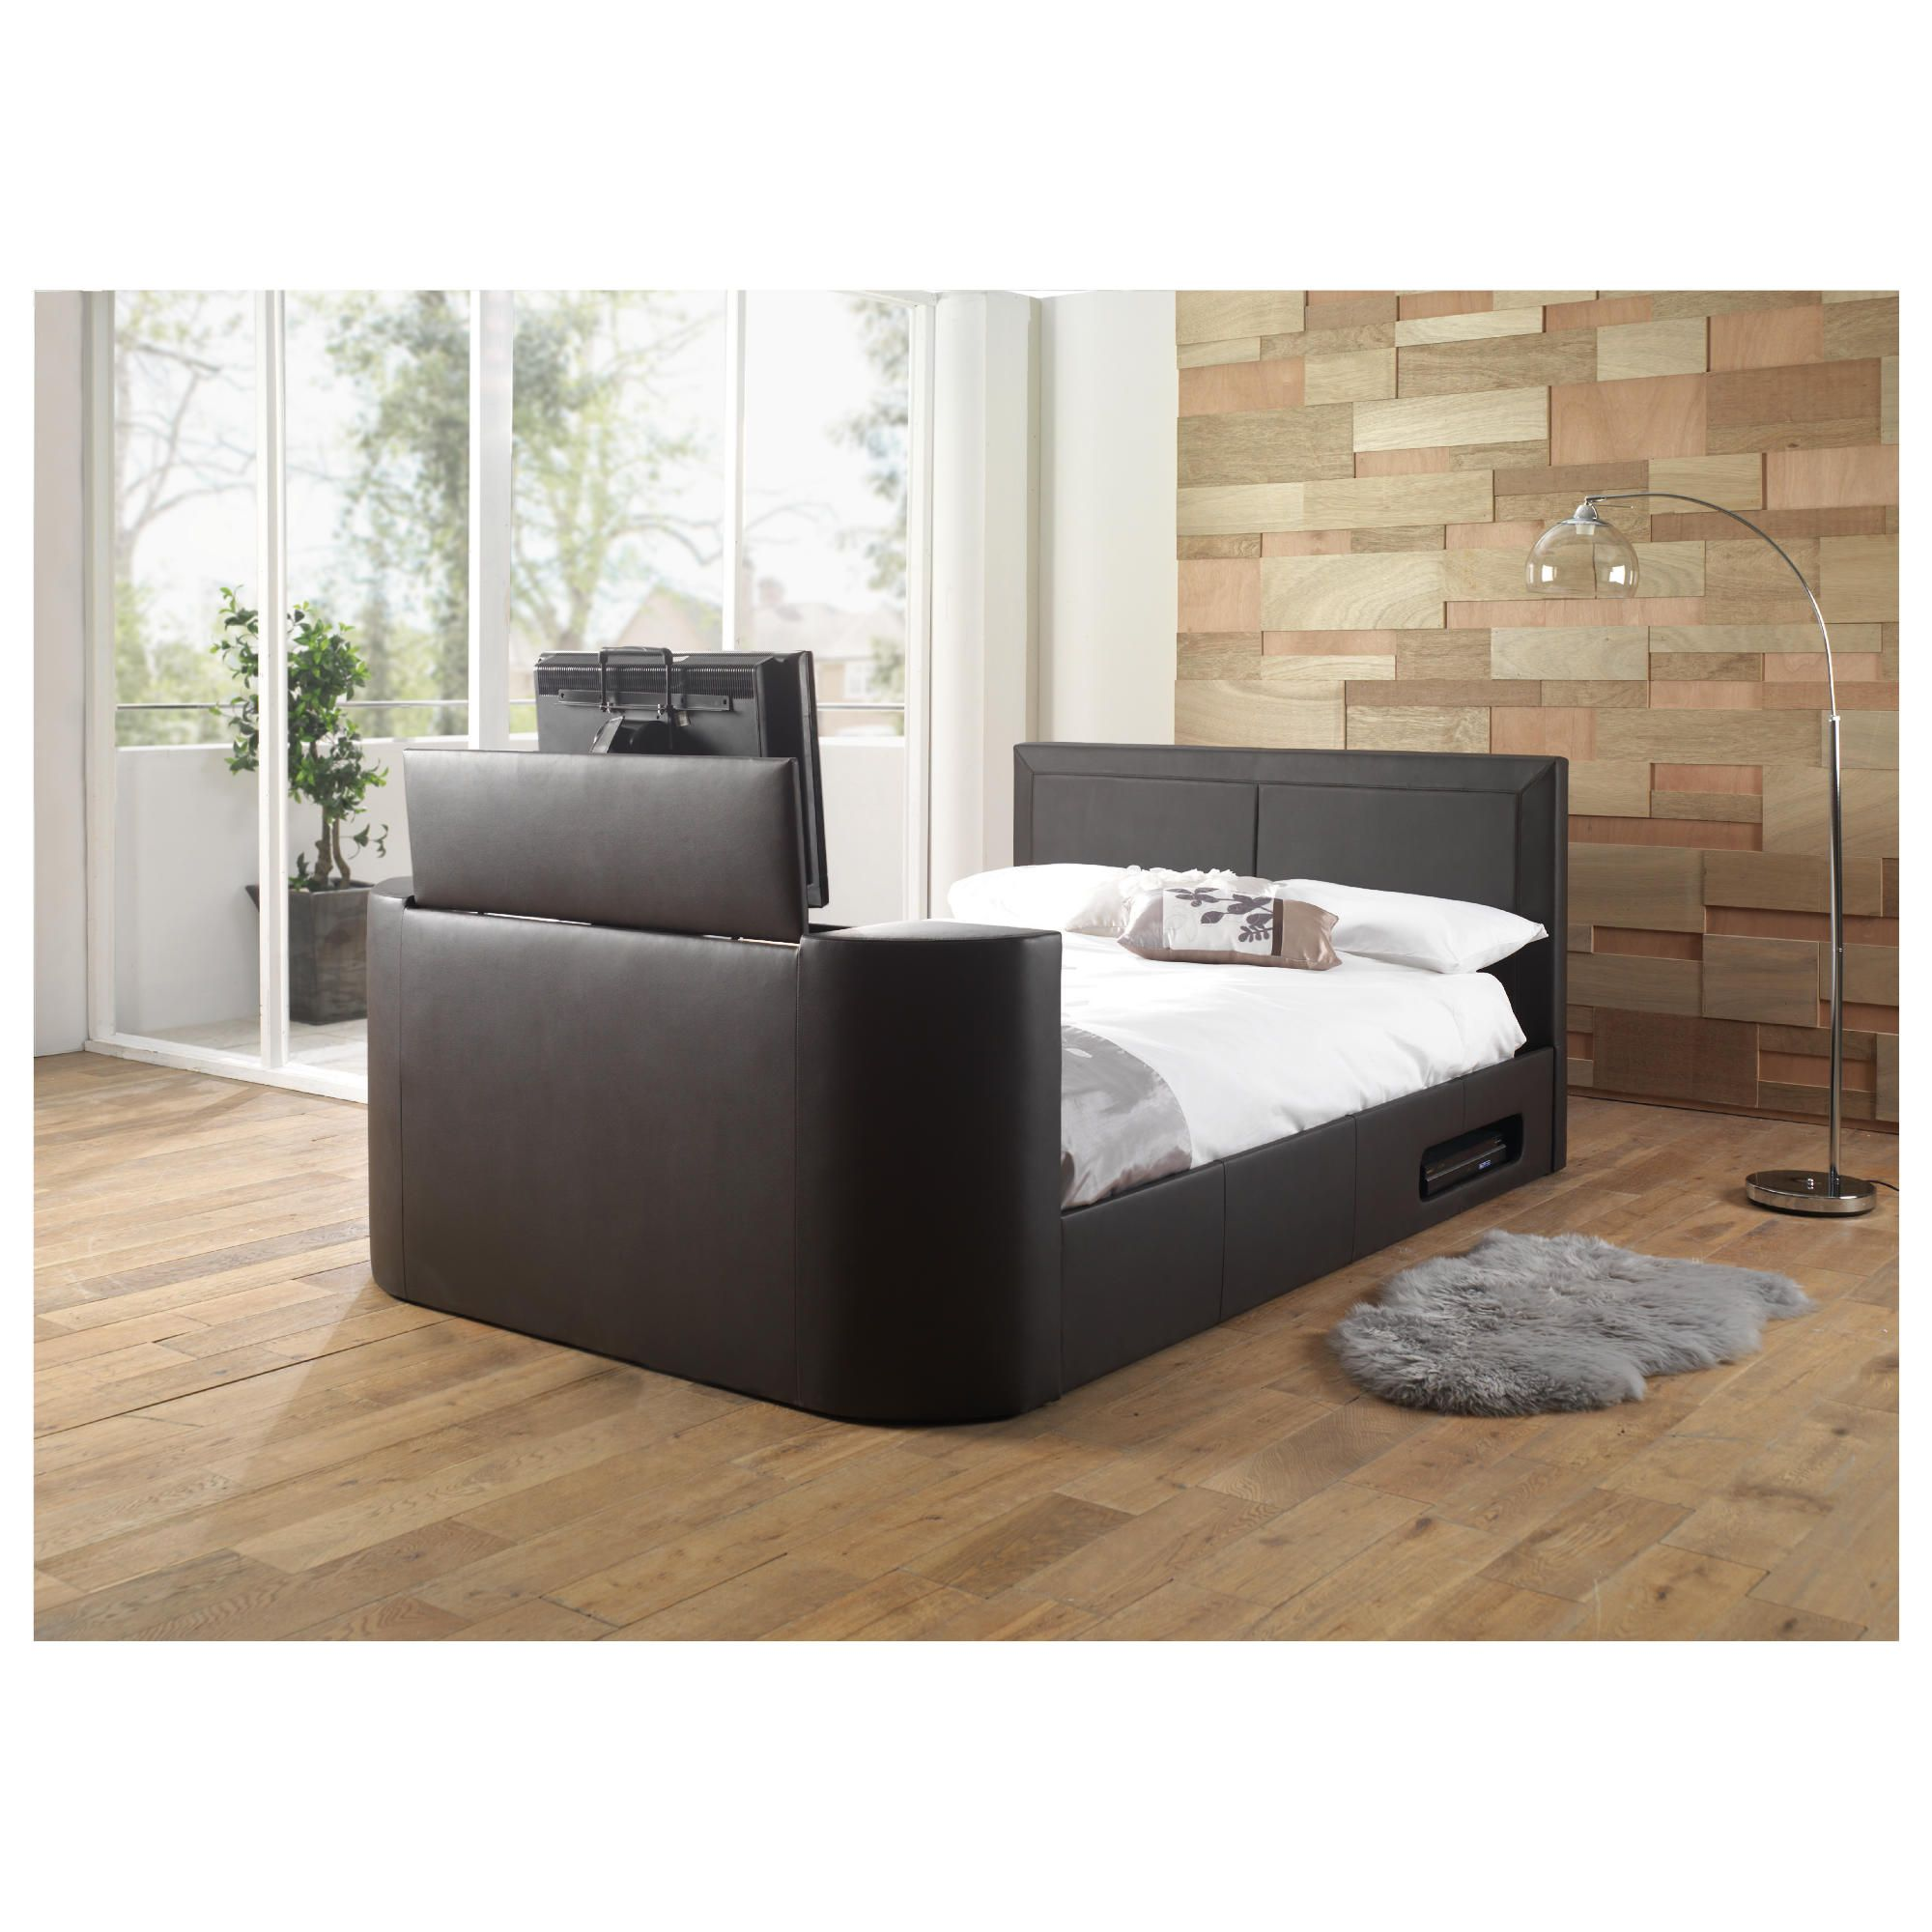 Charlotte Double Gas Lift Tv Bed Frame, Brown at Tescos Direct